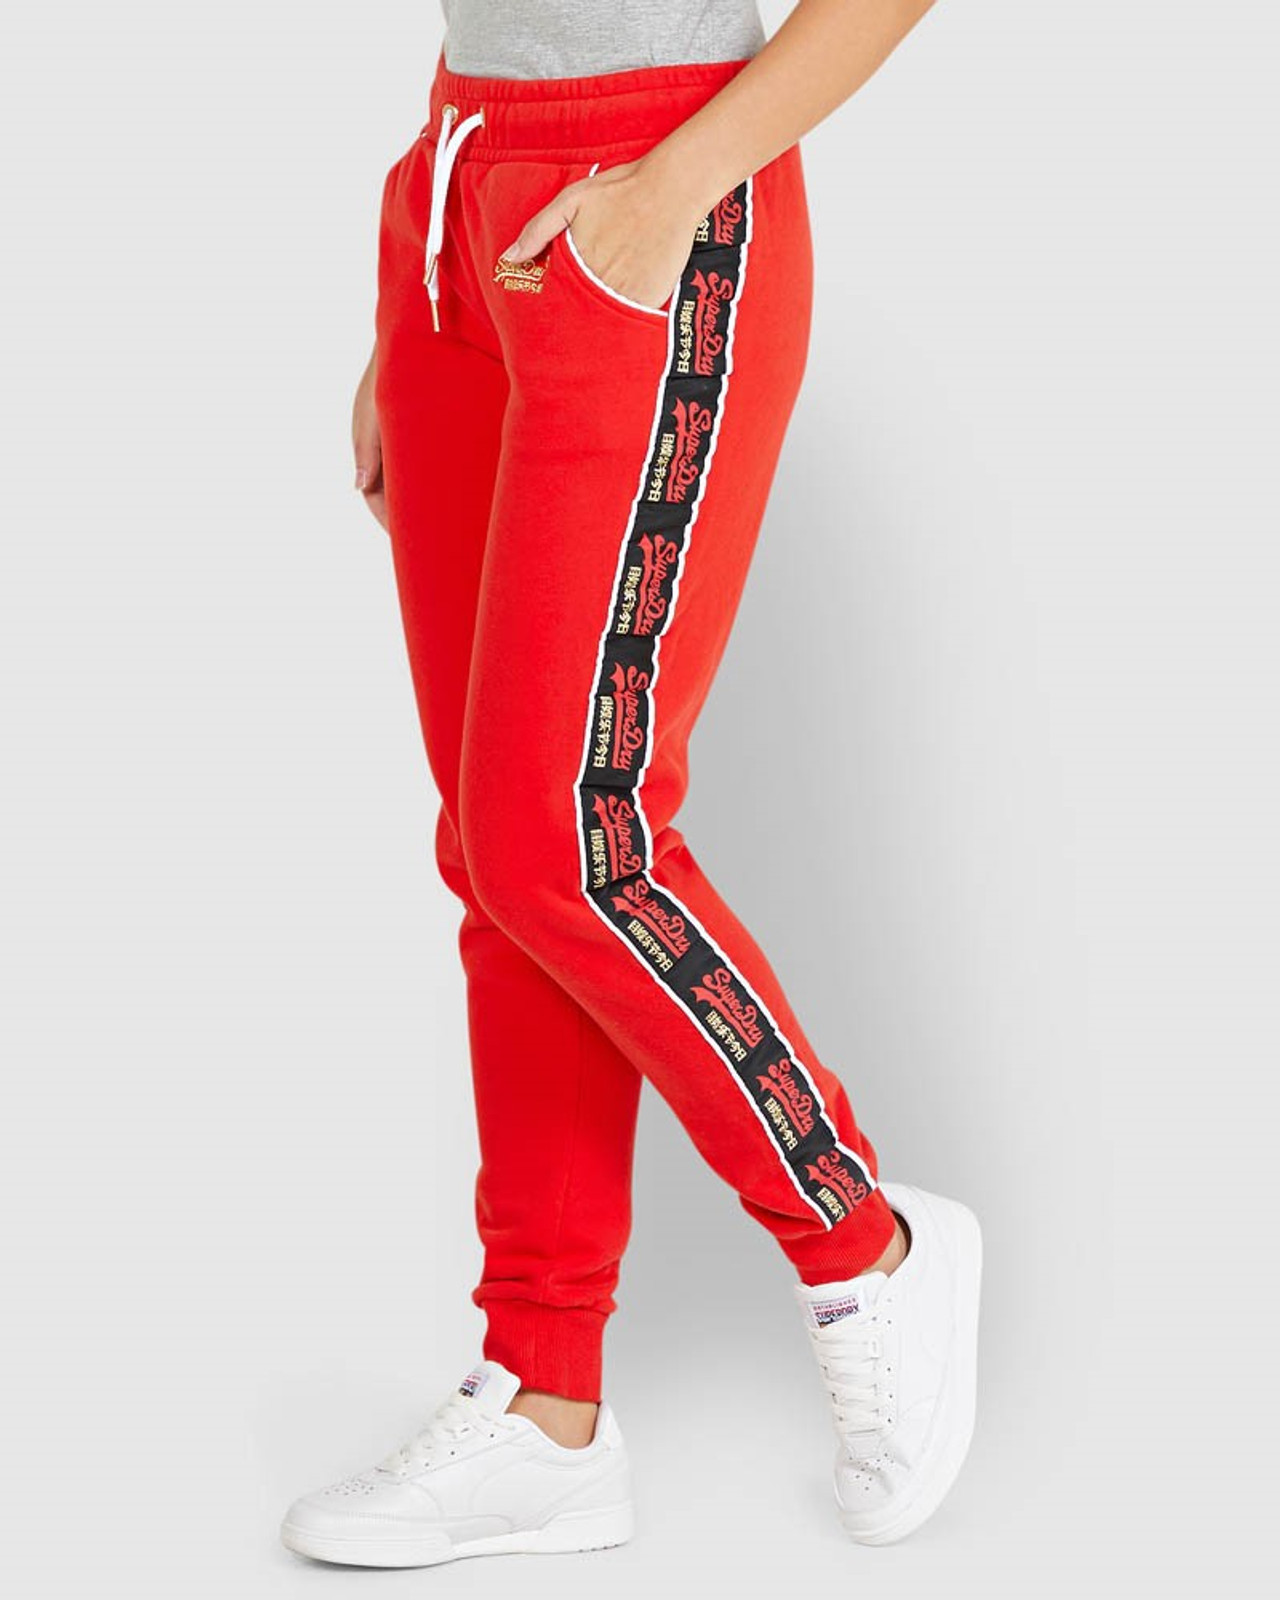 Superdry Womens CNY JOGGER Red Cuffed Joggers 2